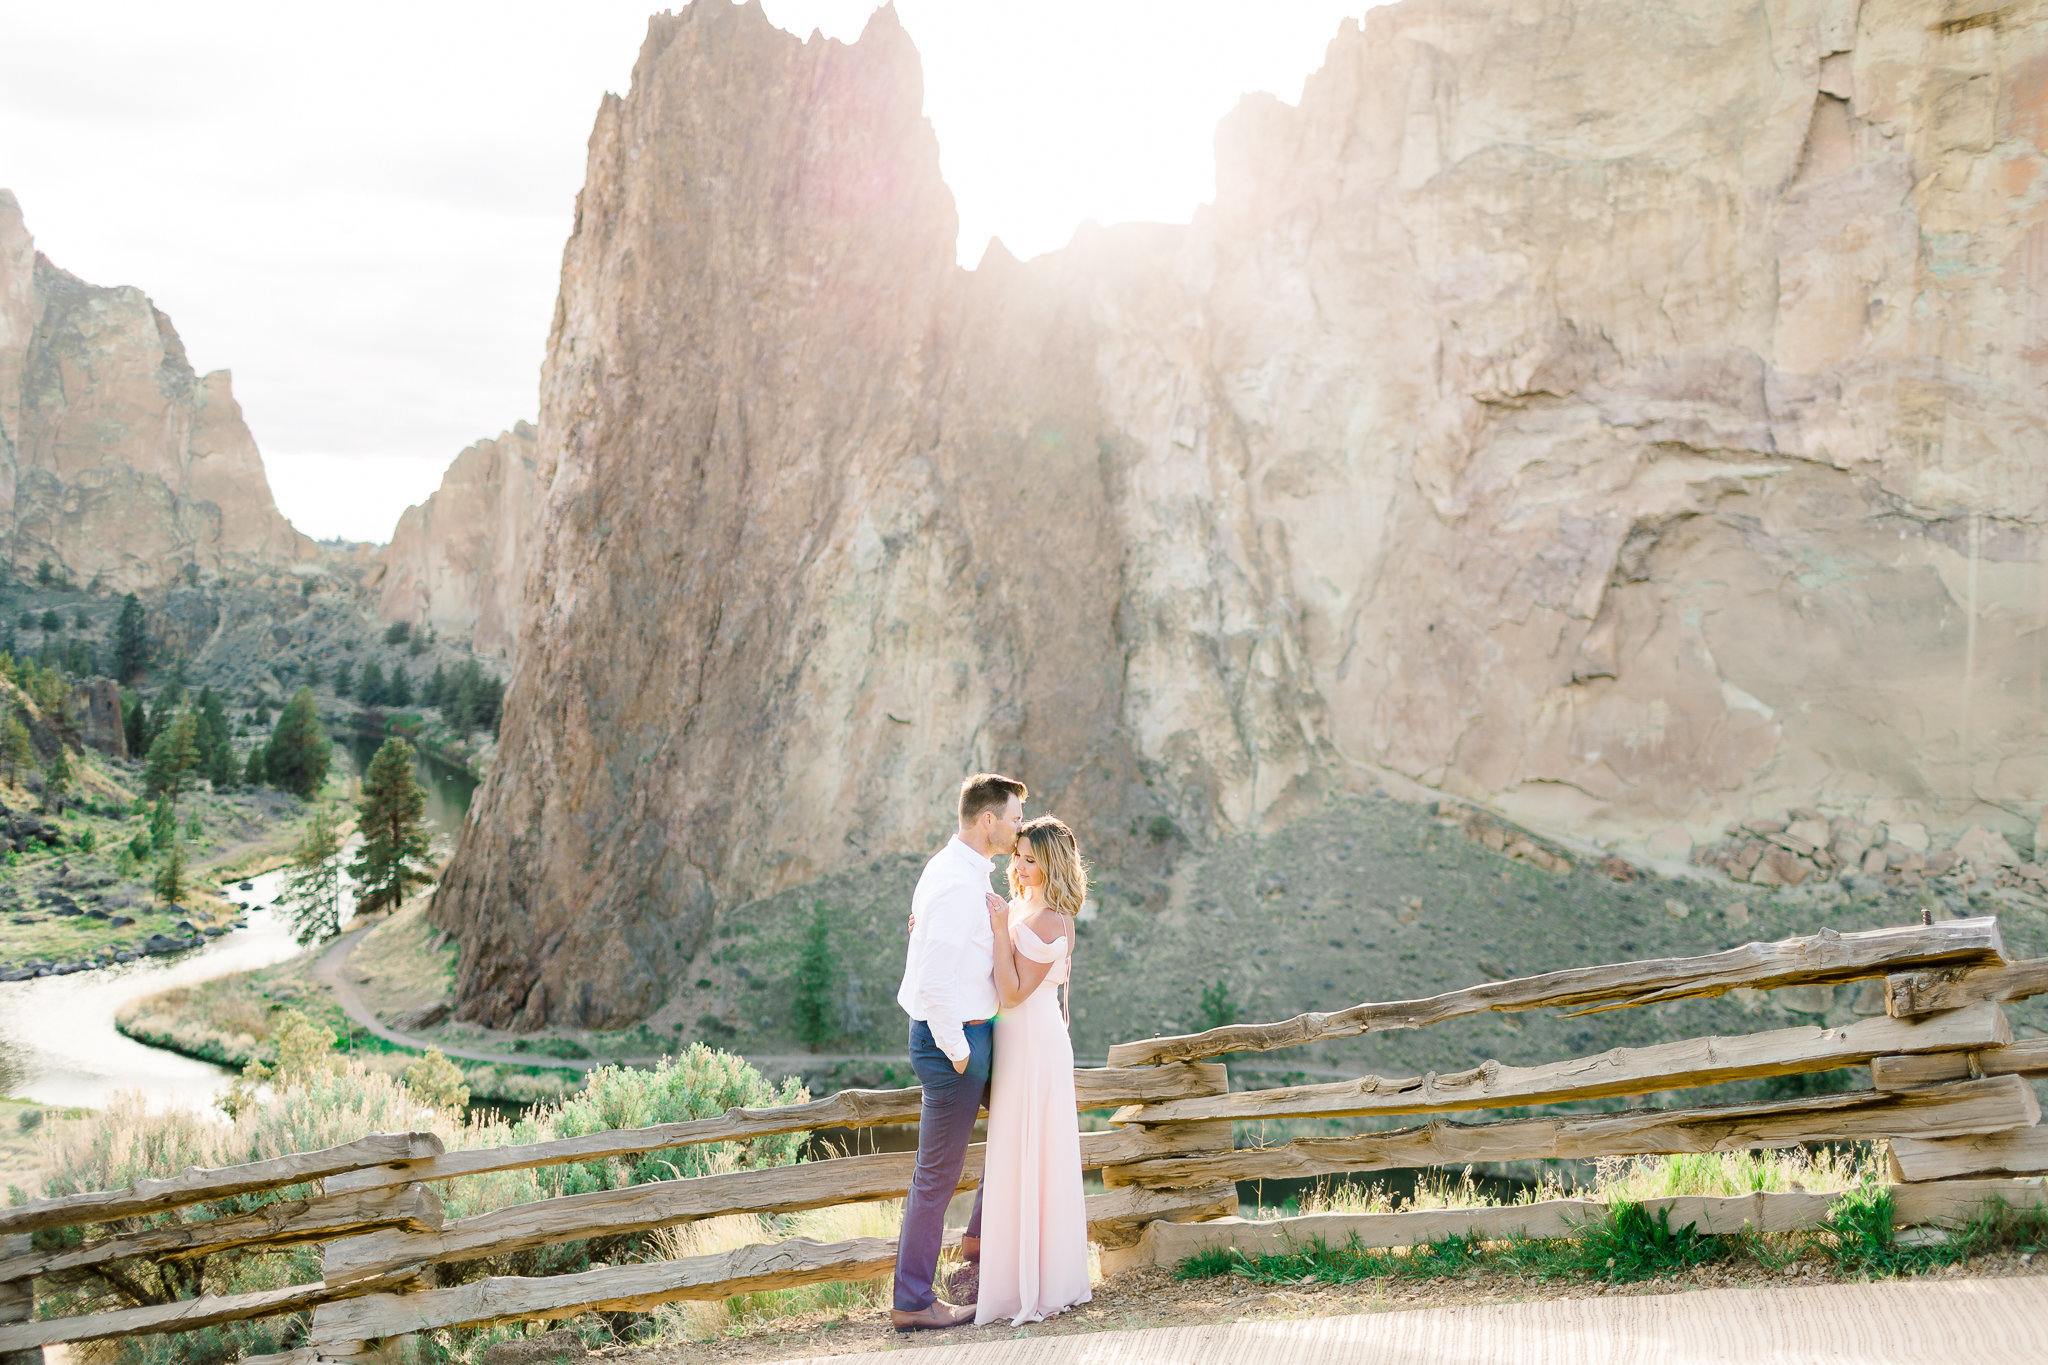 photographe-seance-anniversaire-de-mariage-smith-rock-state-park-oregon-lisa-renault-photographie-wedding-anniversary-session-photographer-58